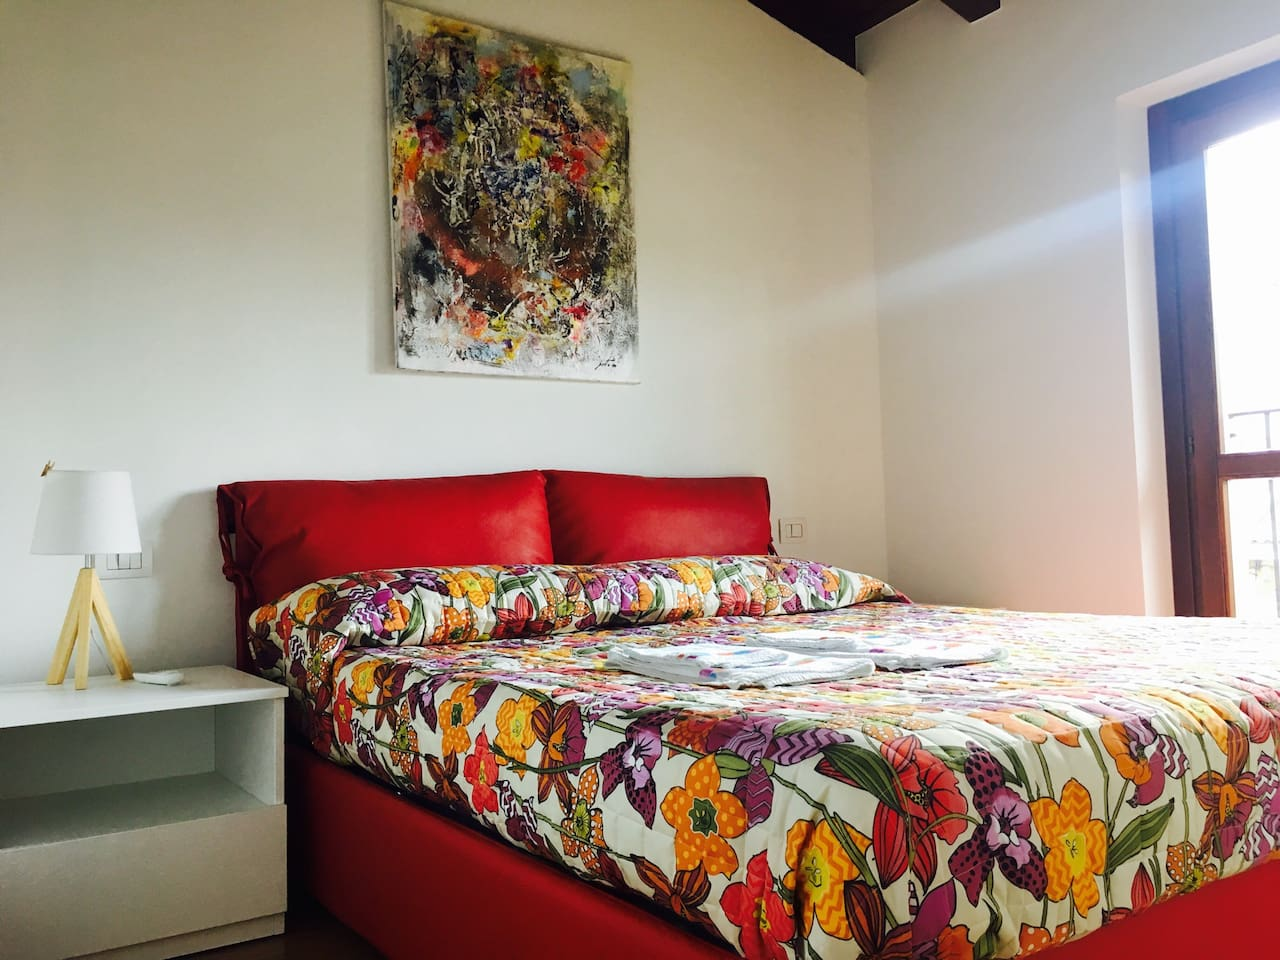 The bedroom equipped with air conditioning as well as the livingroom